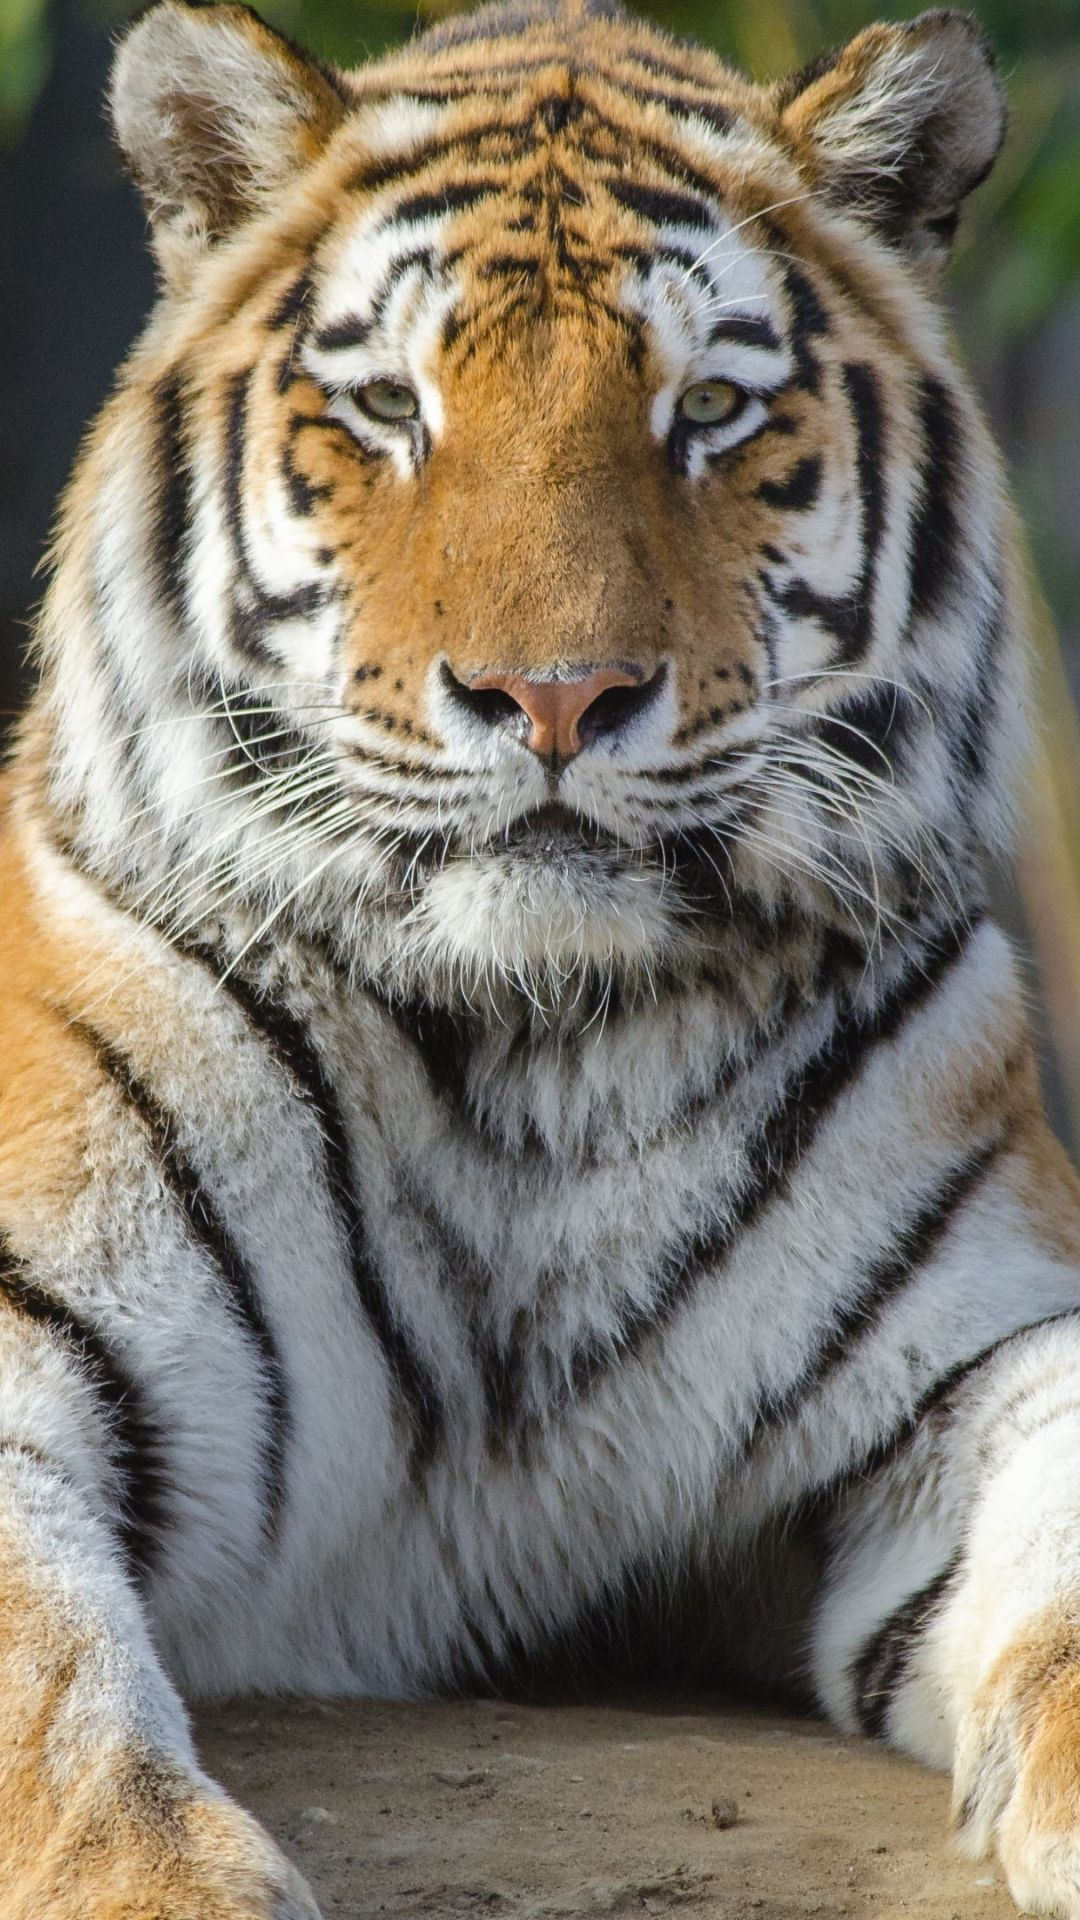 Cool Tiger Wallpaper Ios ~ Animals Wallpapers Ideas in 2020 | Tiger  wallpaper, Animal wallpaper, Tiger